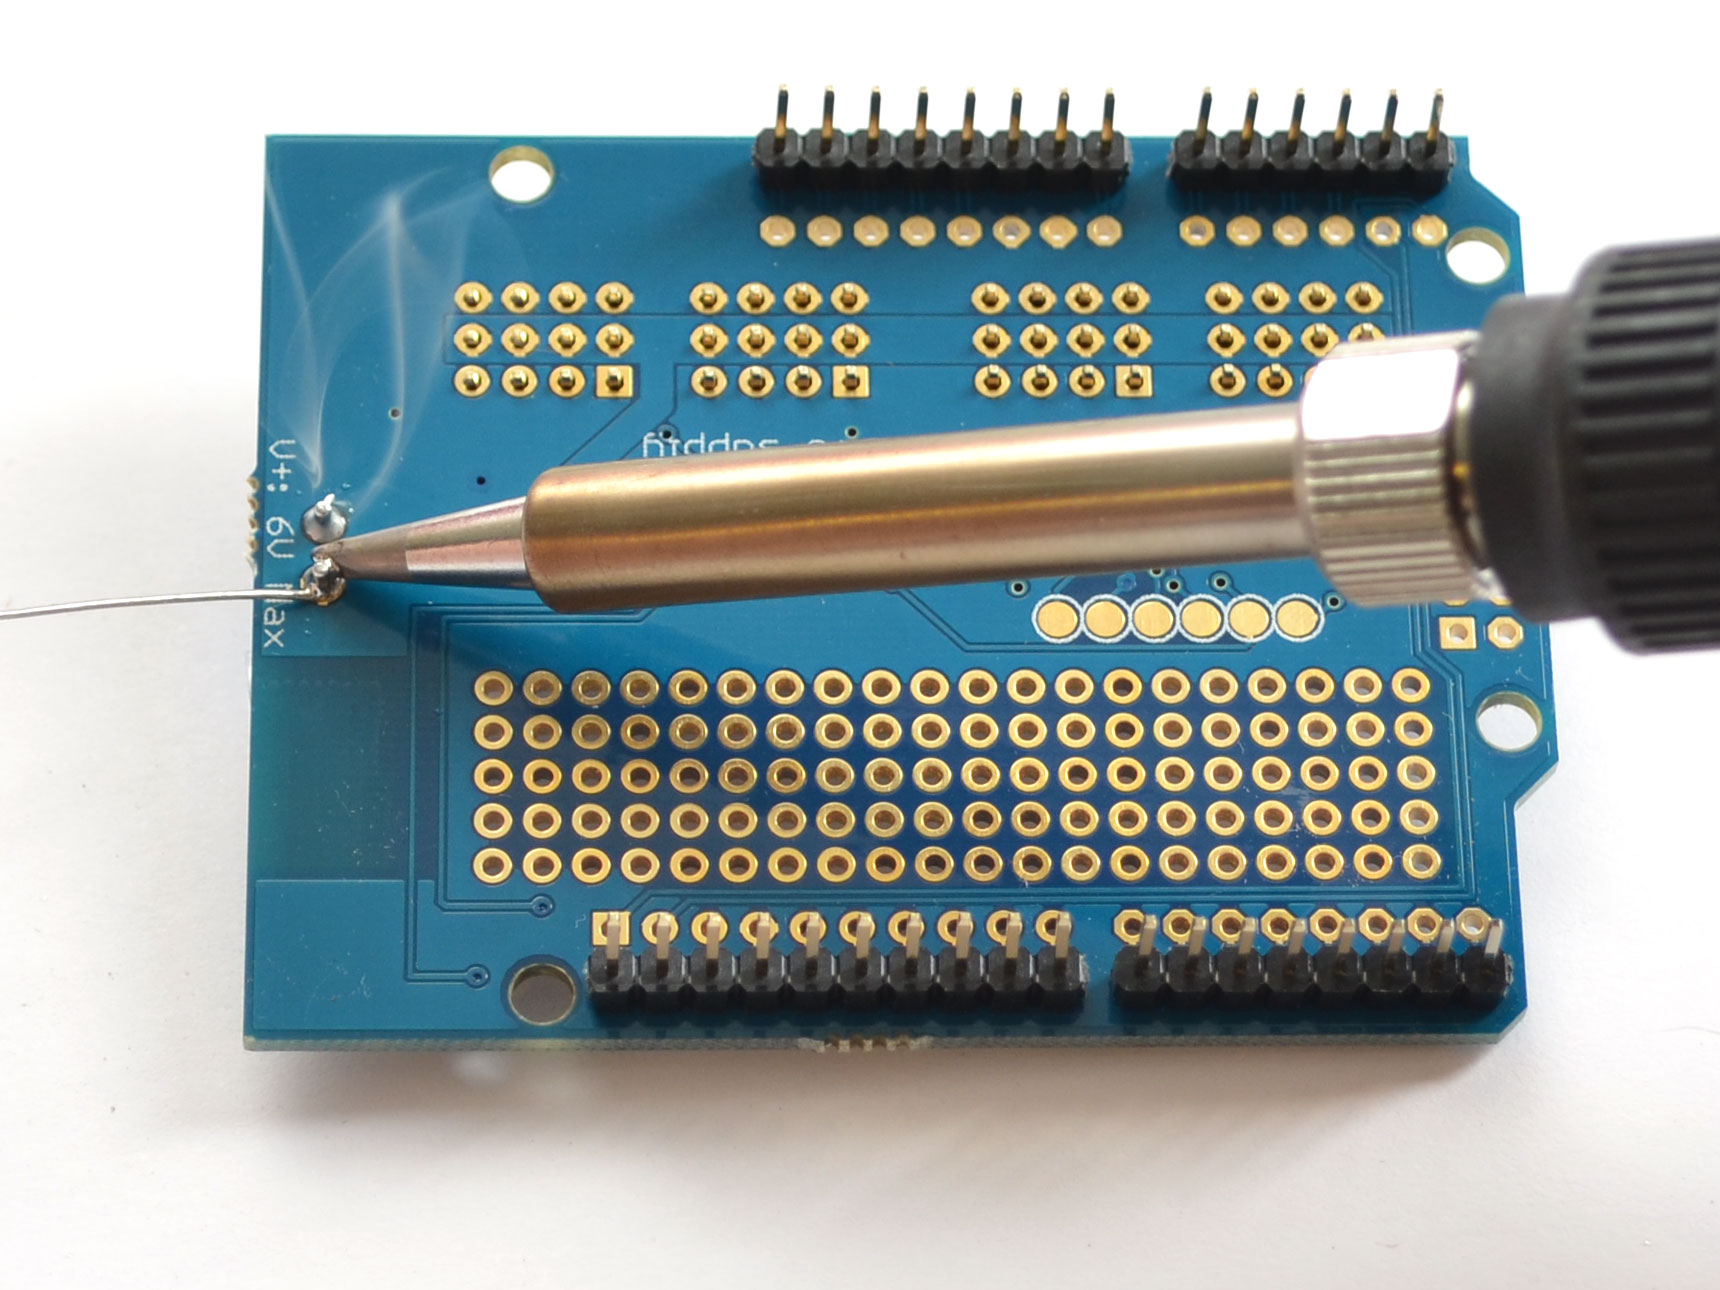 adafruit_products_solderterm.jpg